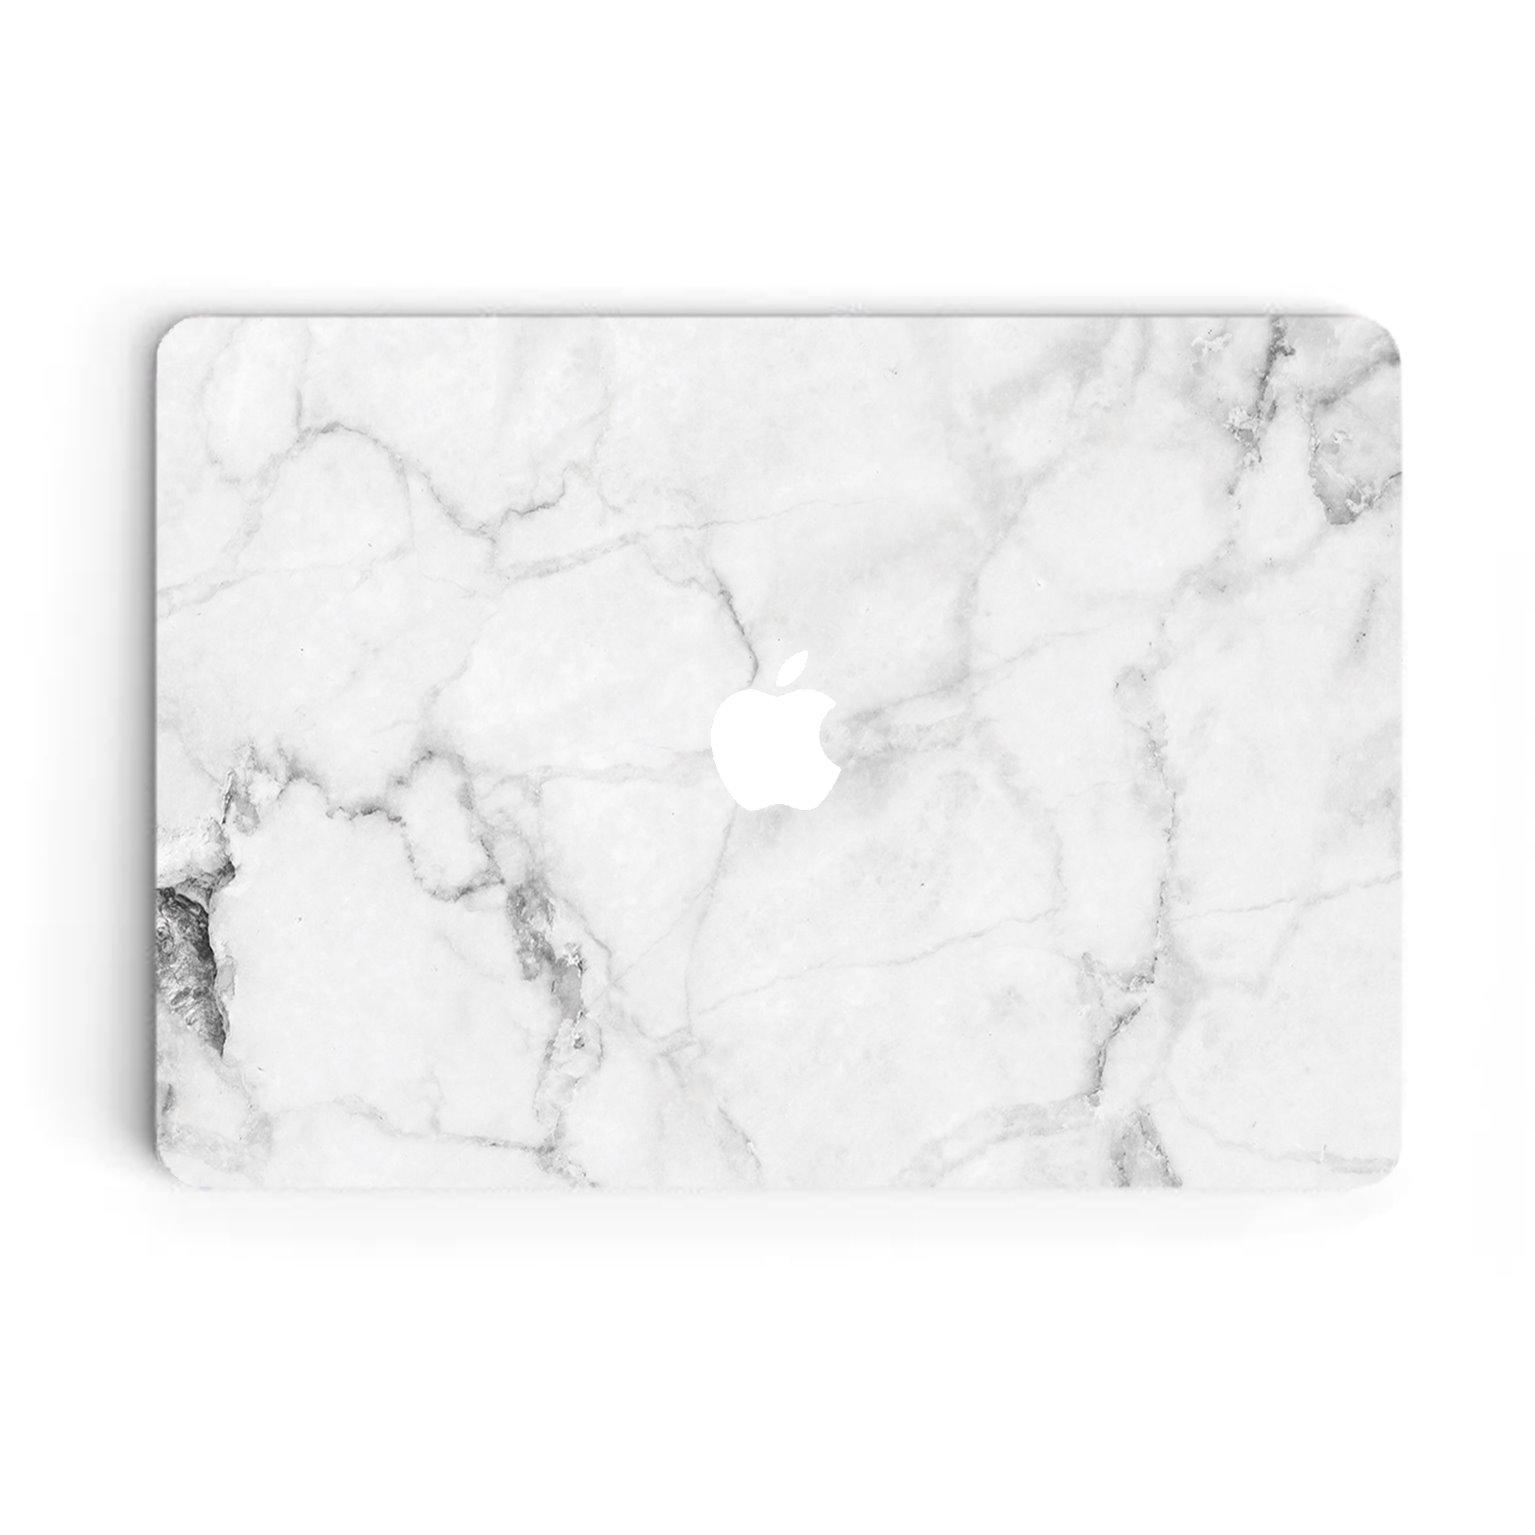 Cheapest Laptop Macbook Skin Sticker Decal Marble For Air 13 Inch Instock